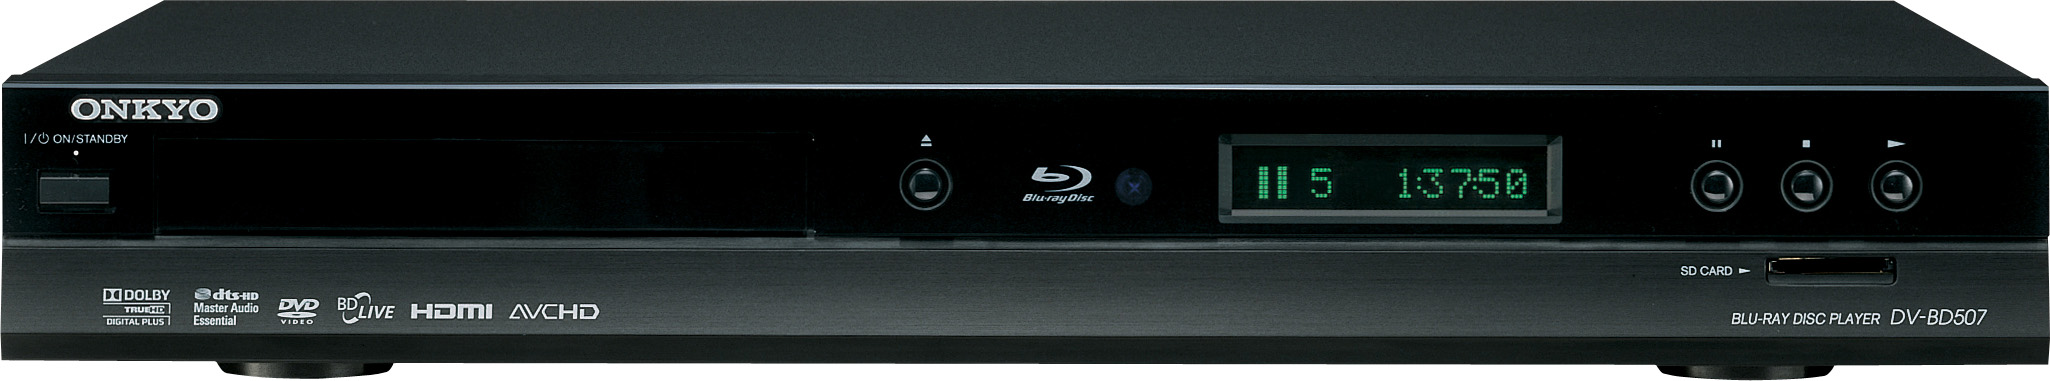 Onkyo DV-BD507 Blu-ray player: pricey but polished